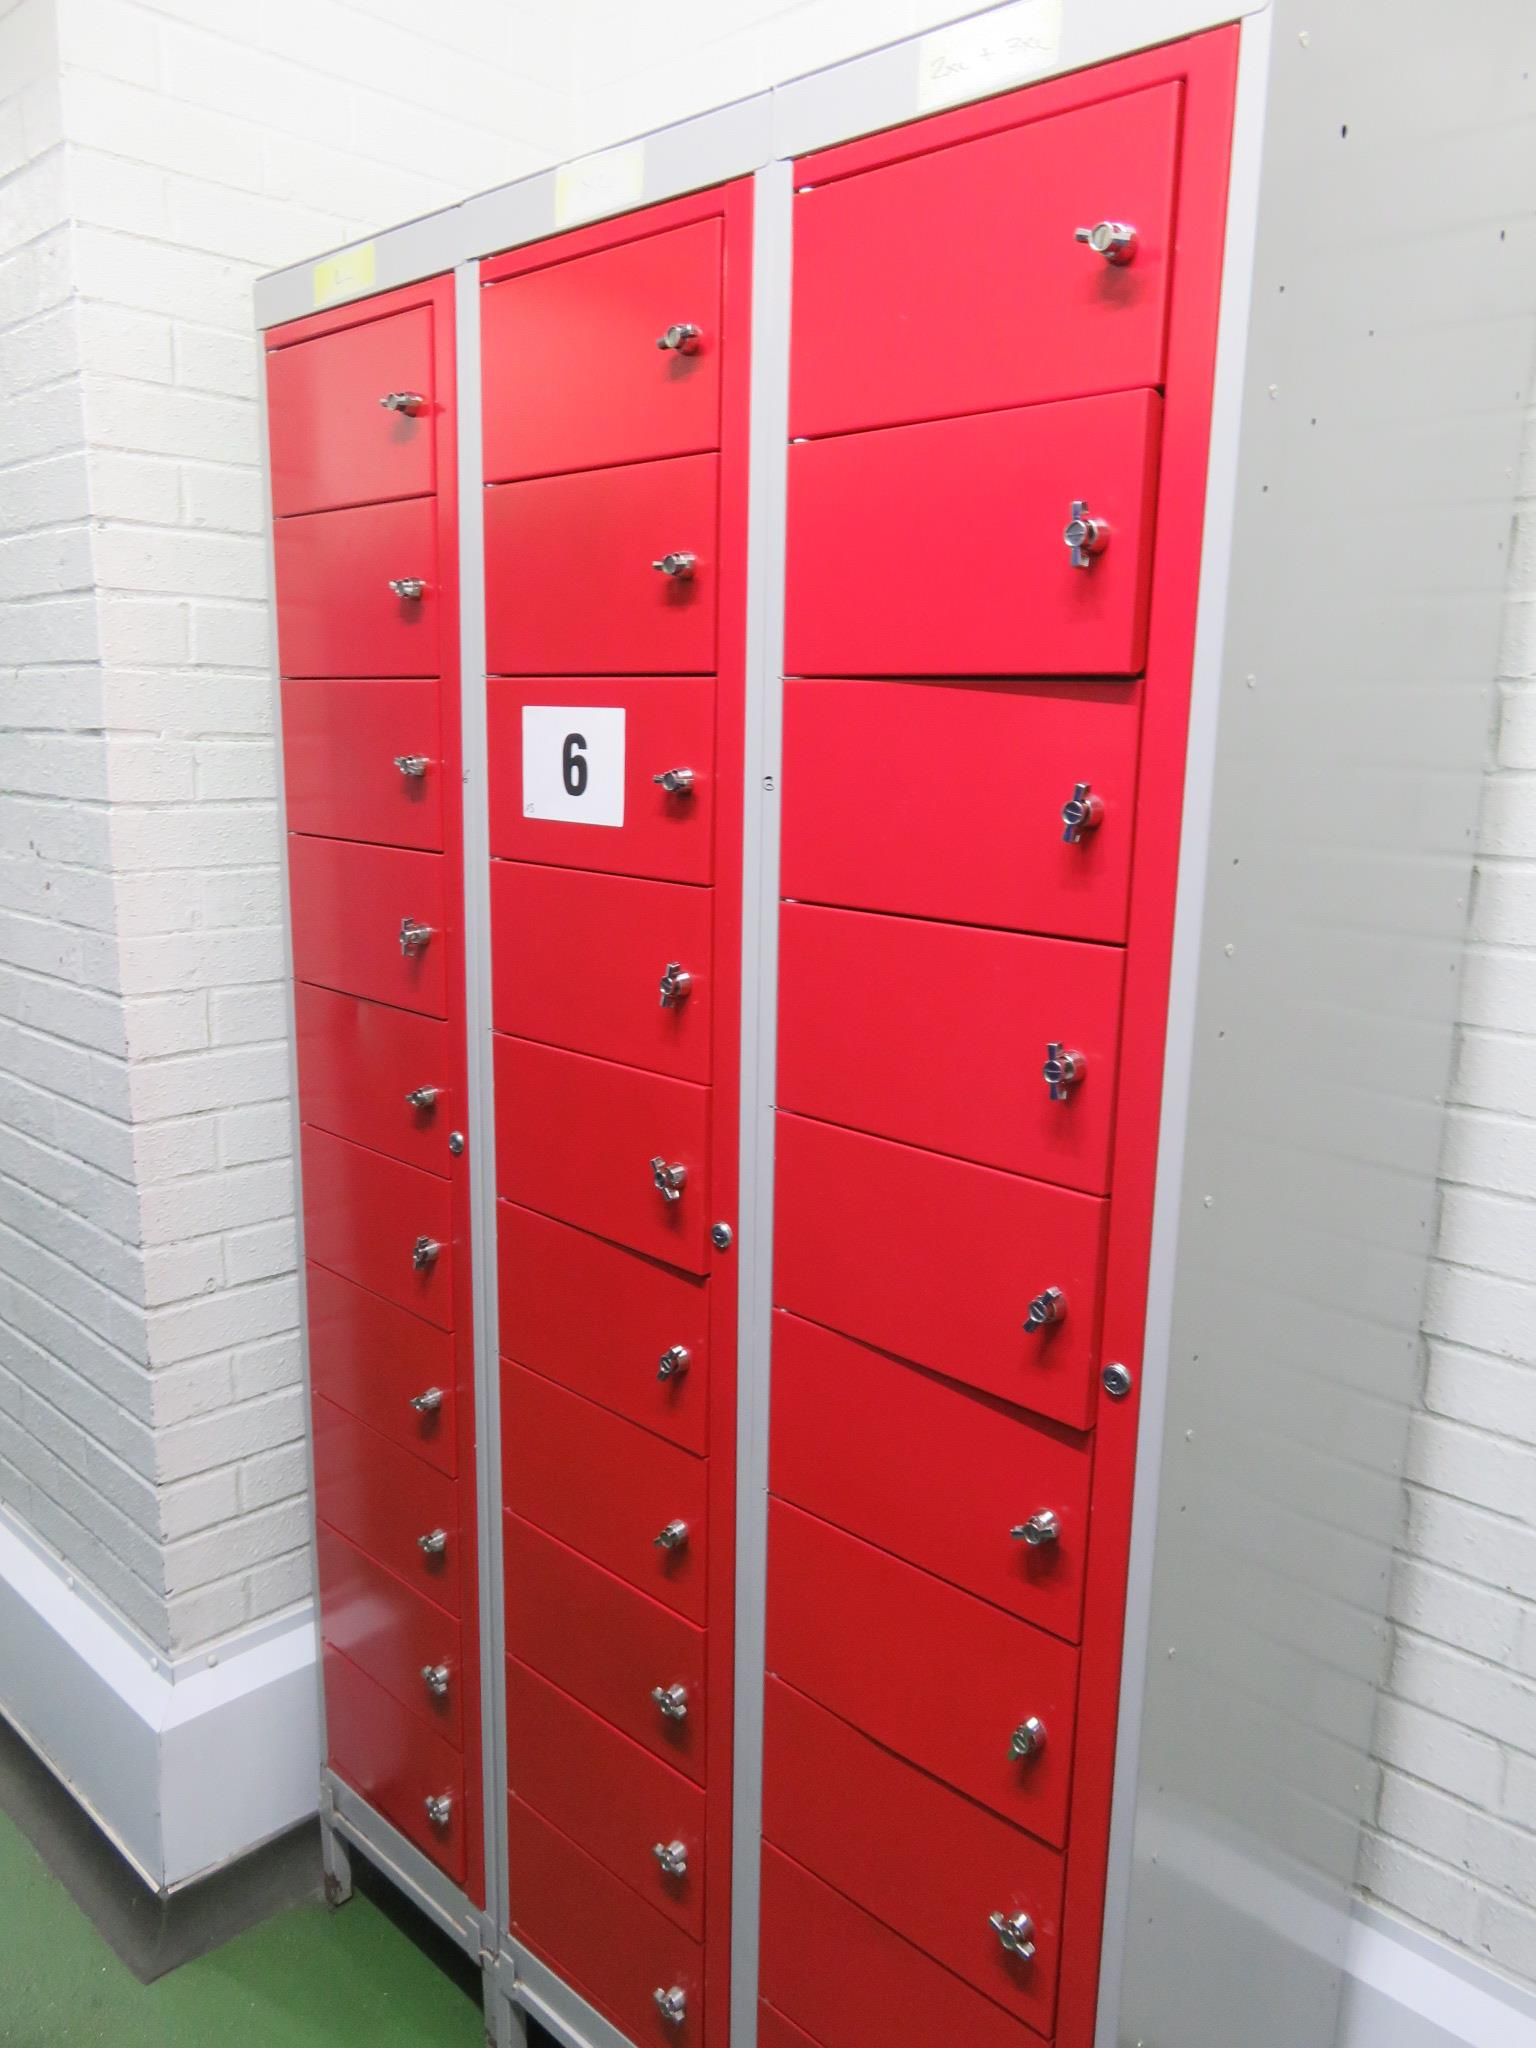 Lot 6 - 3 x Lockers with 10 compartments each. Lift out £15